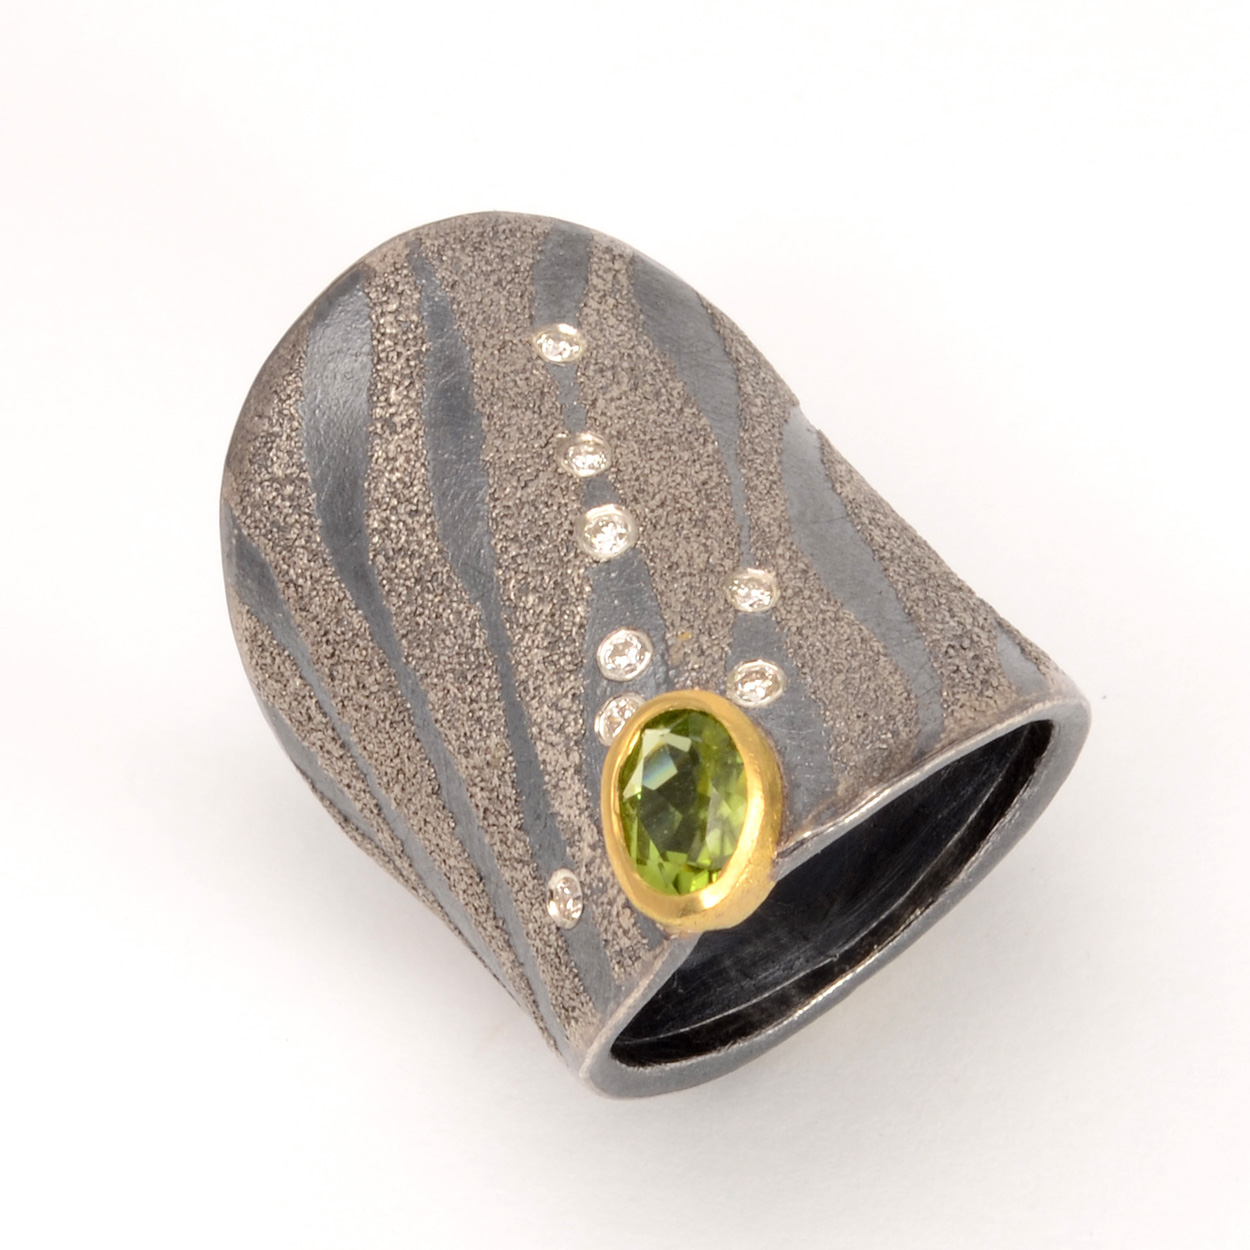 Oxidized Platinum: Santa Fe's Patina Gallery, Internationally Recognized For